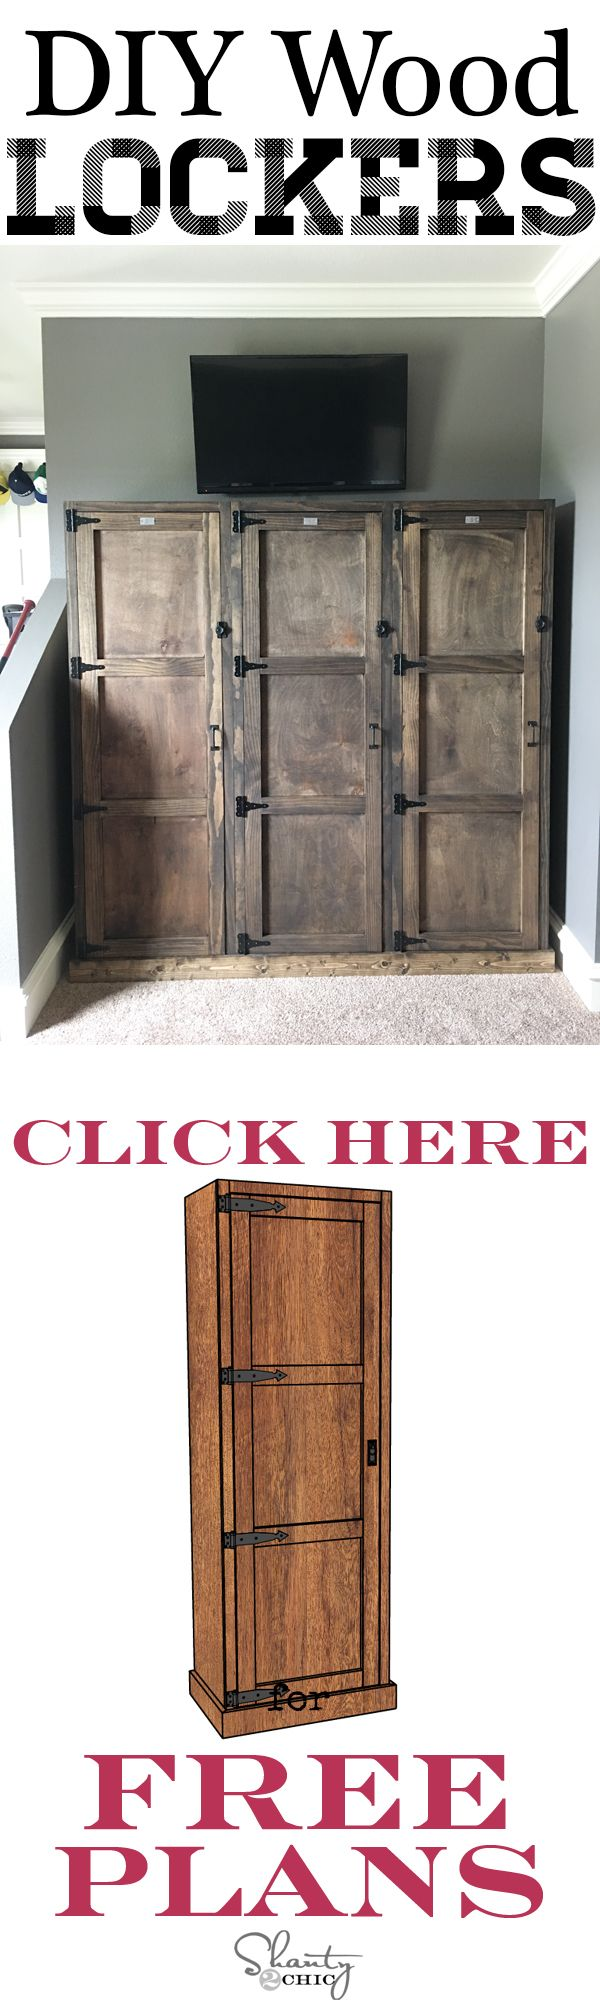 Build You Own Set Of Wooden Lockers With Free Plans From Www Shanty 2 Chic